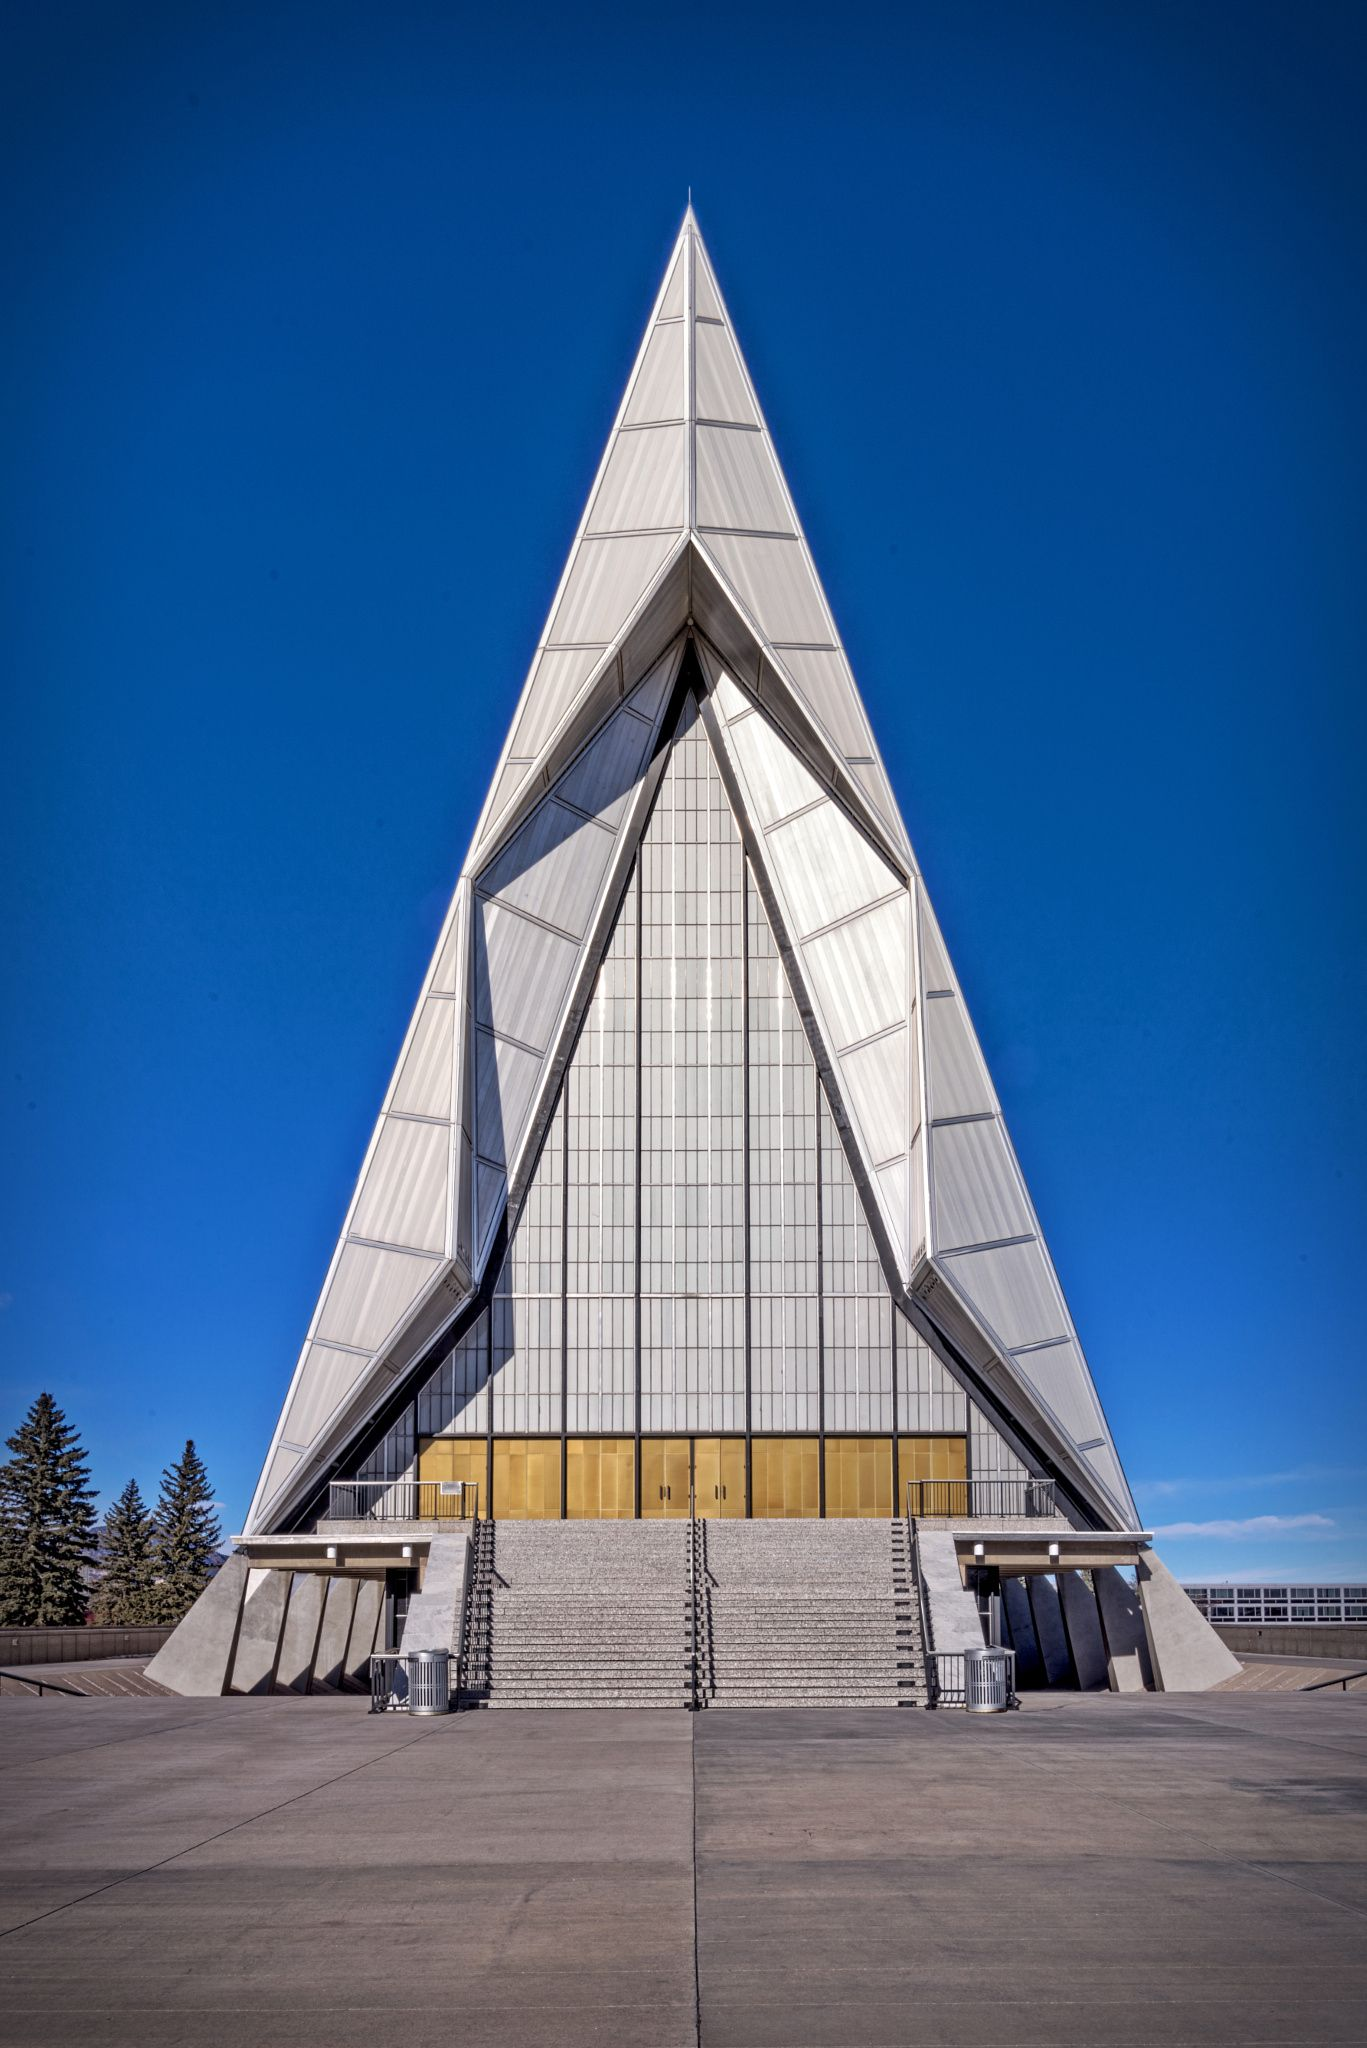 Air Force Academy Chapel Master - A front view of the world famous Air Force Academy Chapel.